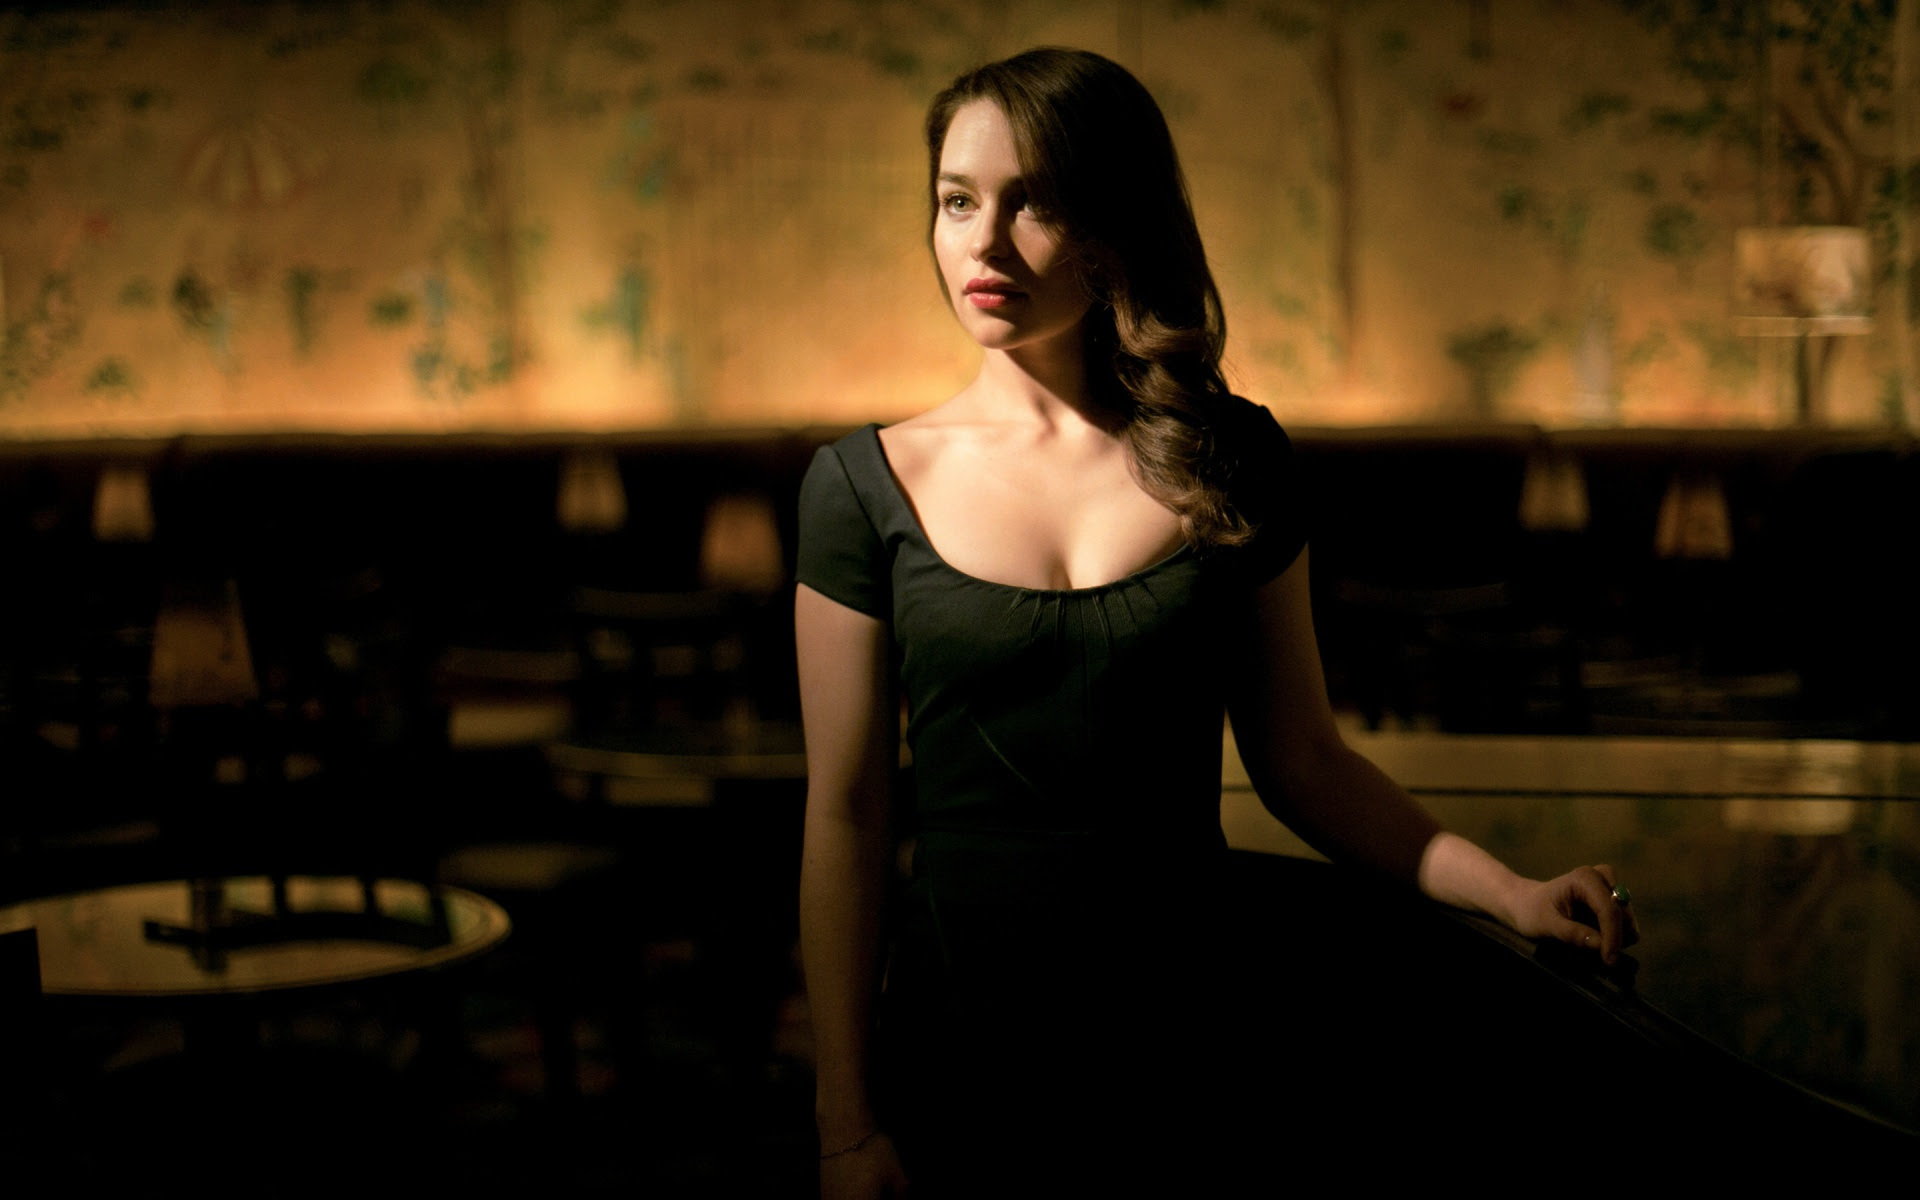 Emilia Clarke Hot Wallpapers In Jpg Format For Free Download